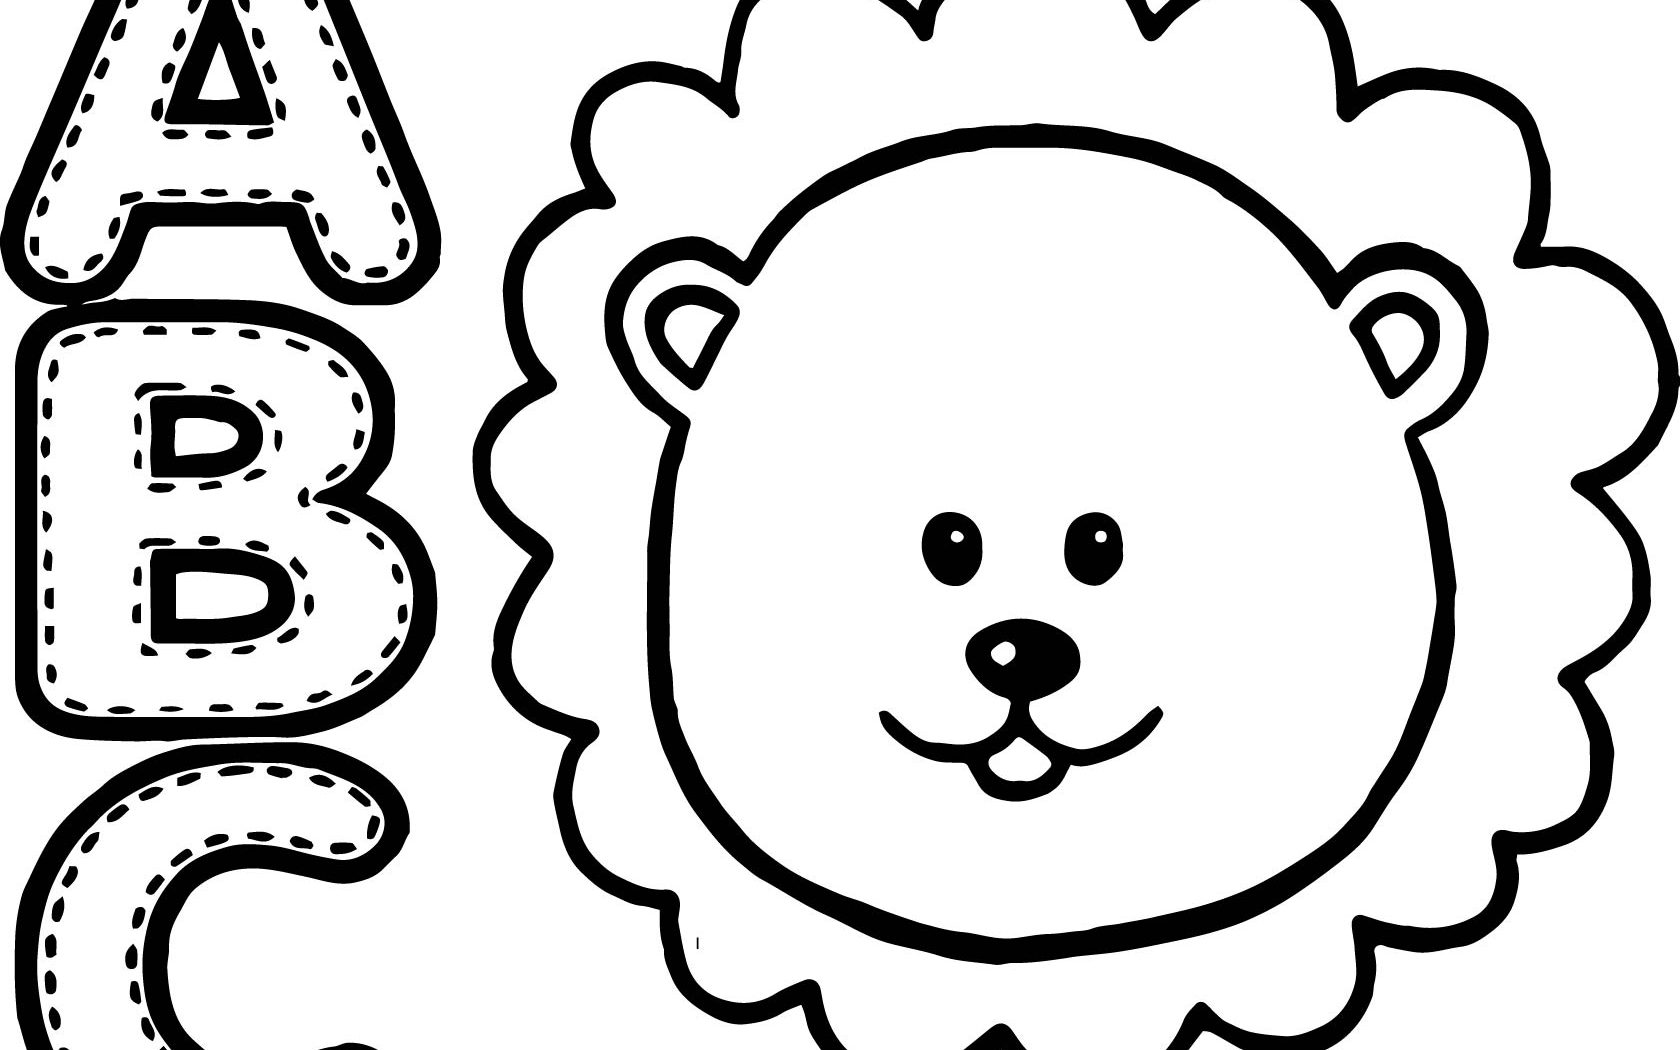 1680x1050 Chimpanzee Clipart Animal Faces To Print Free Printable Coloring